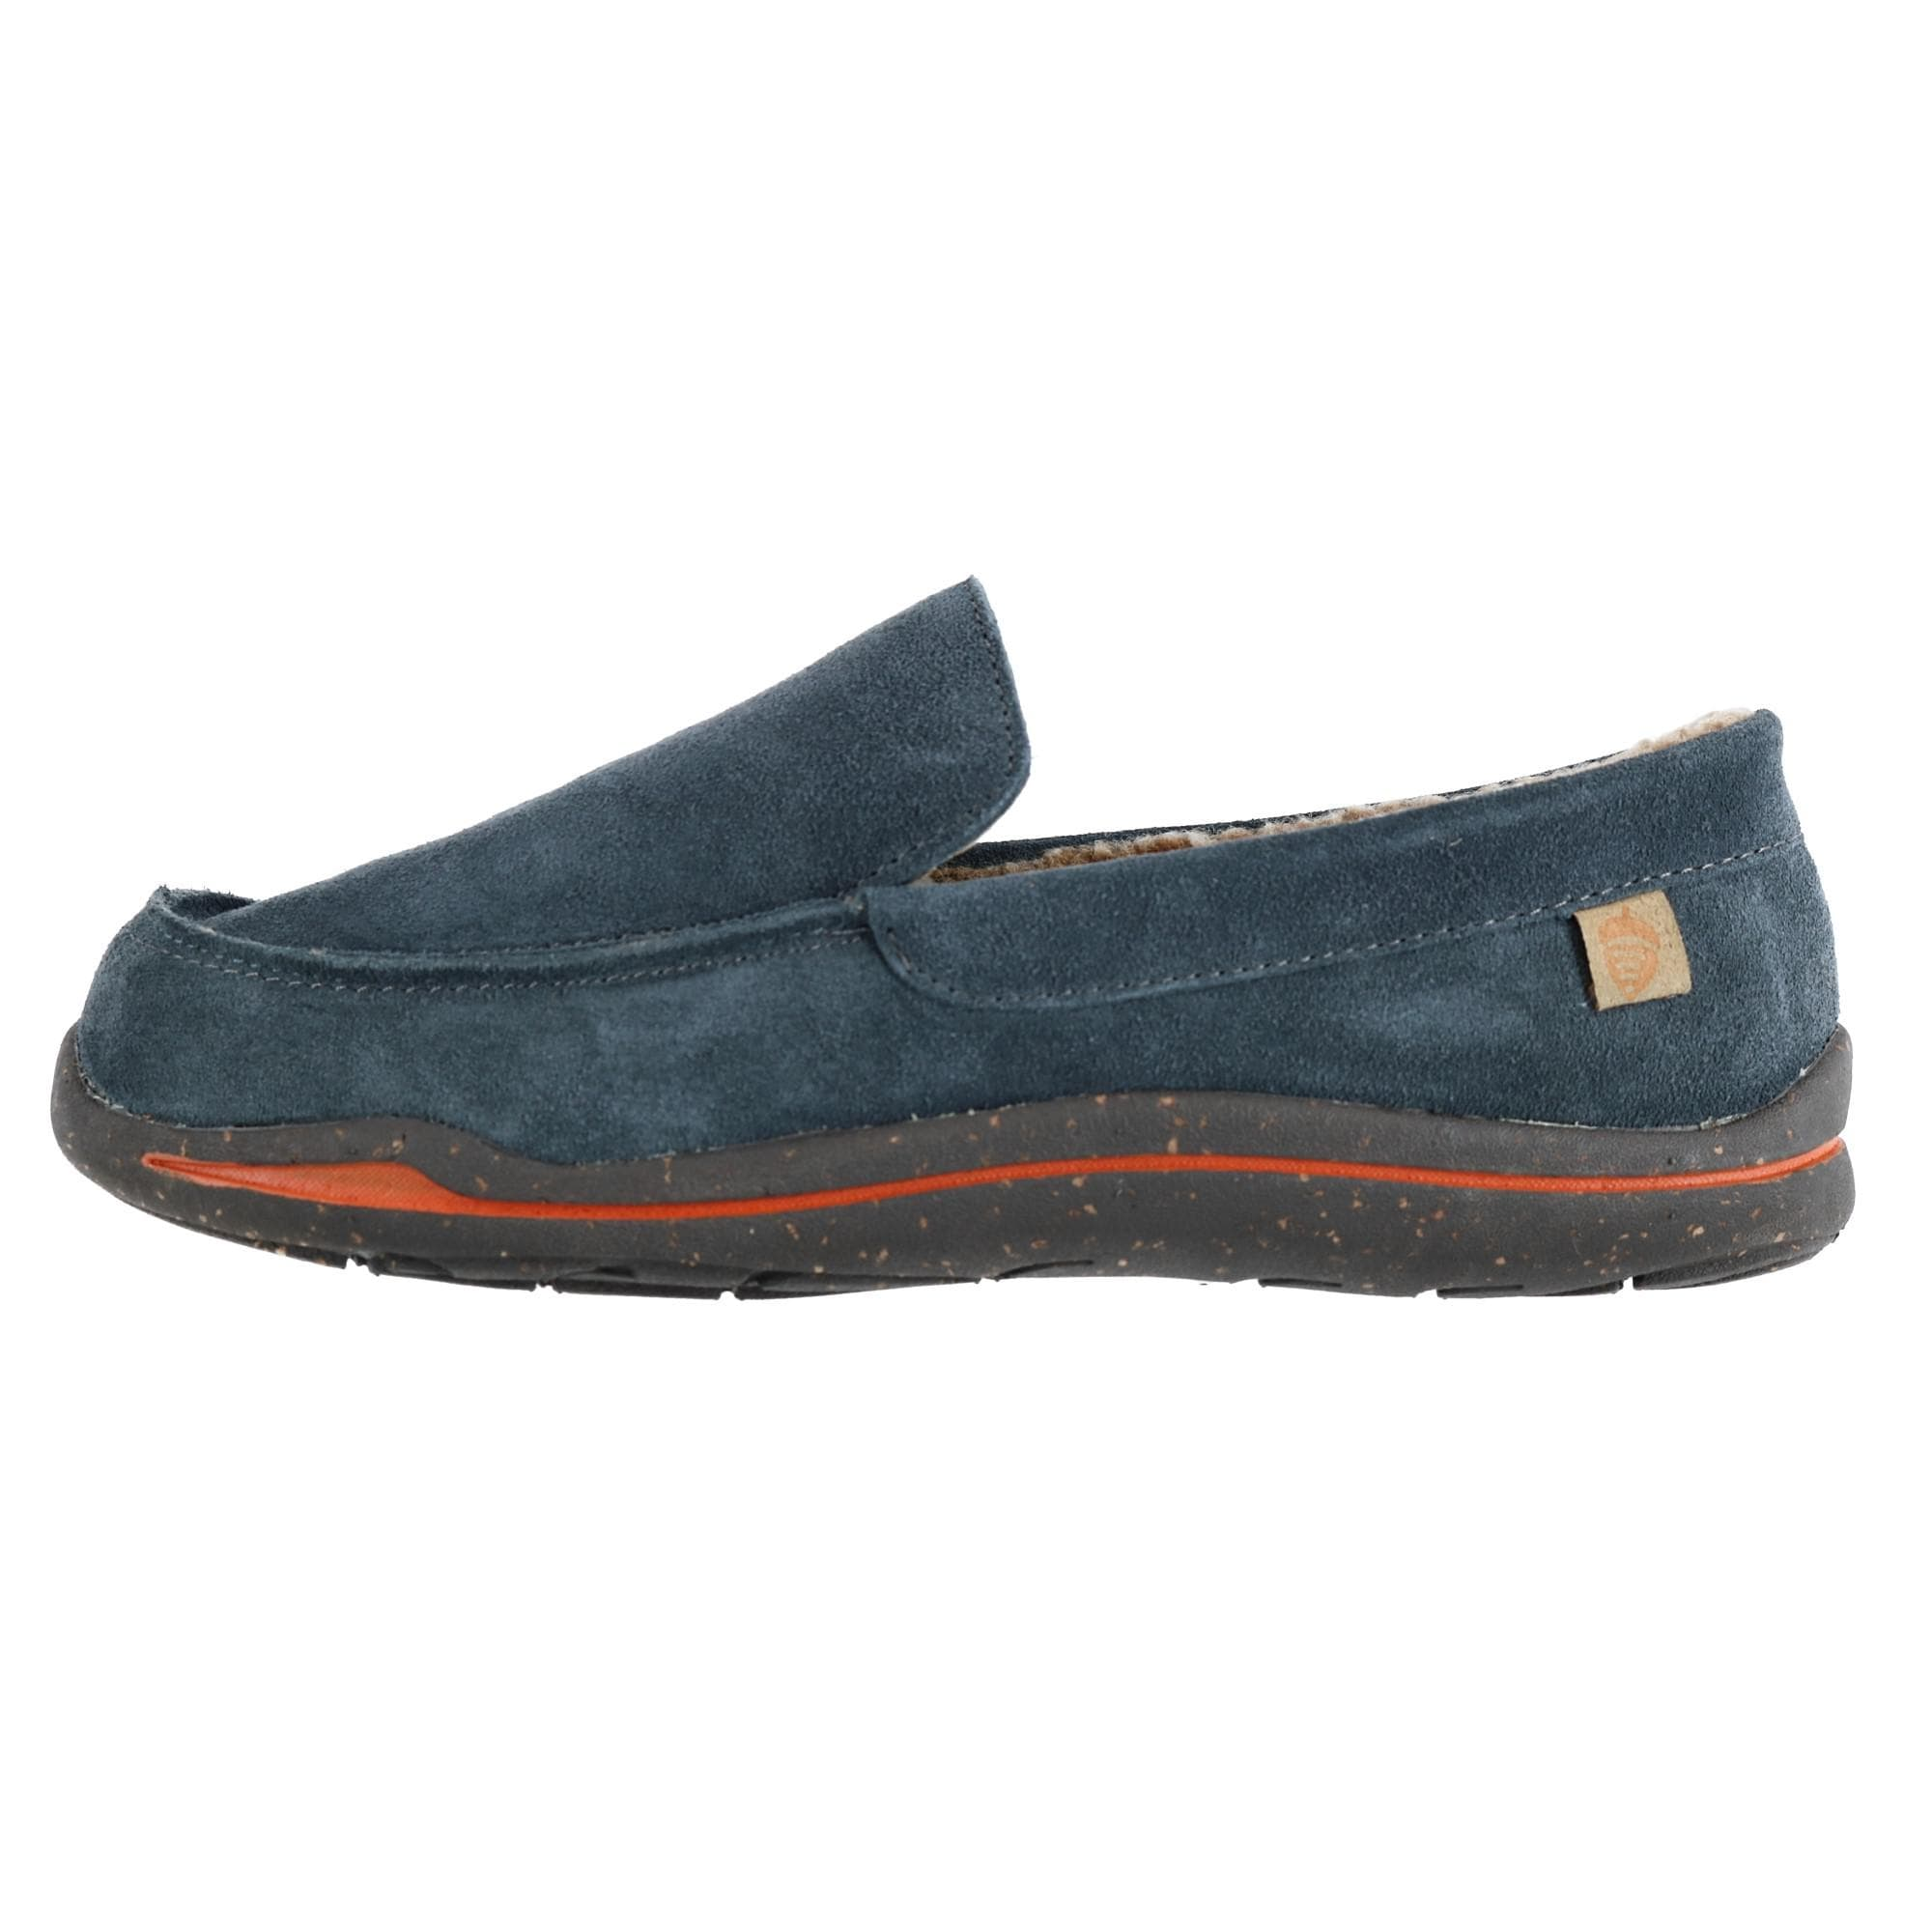 d465b2d07cd Shop Acorn Men's Ellsworth Suede Moccasin Slipper - Free Shipping Today -  Overstock - 23016571